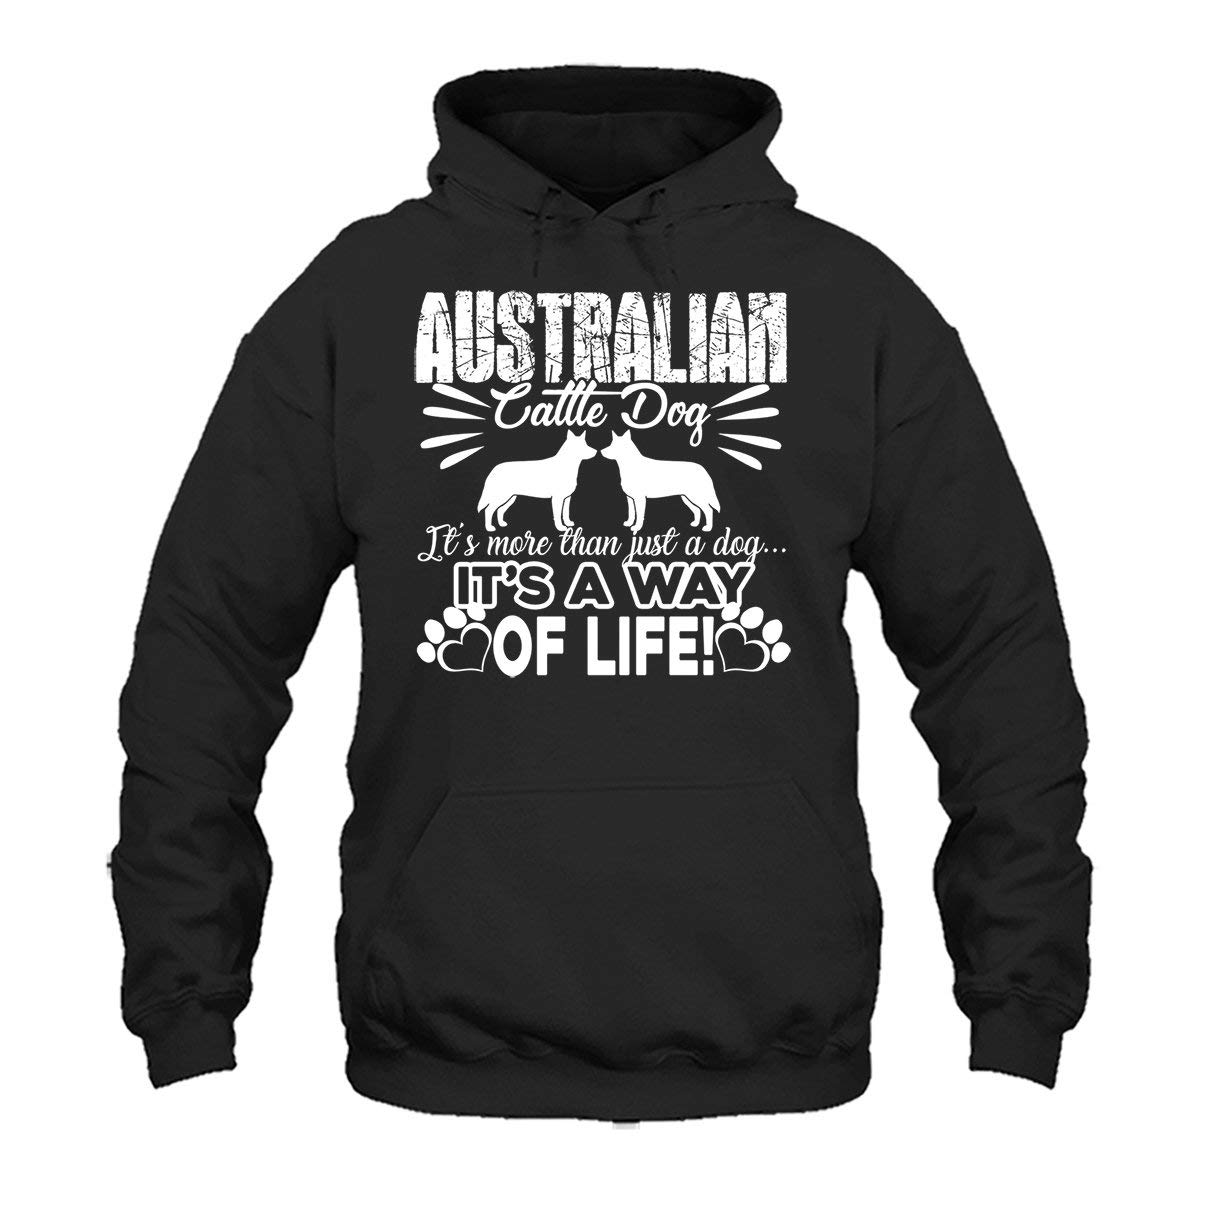 Long Sleeve Shirt Two Camel Australian Cattle Dog Its A Way of Life Tee Shirt